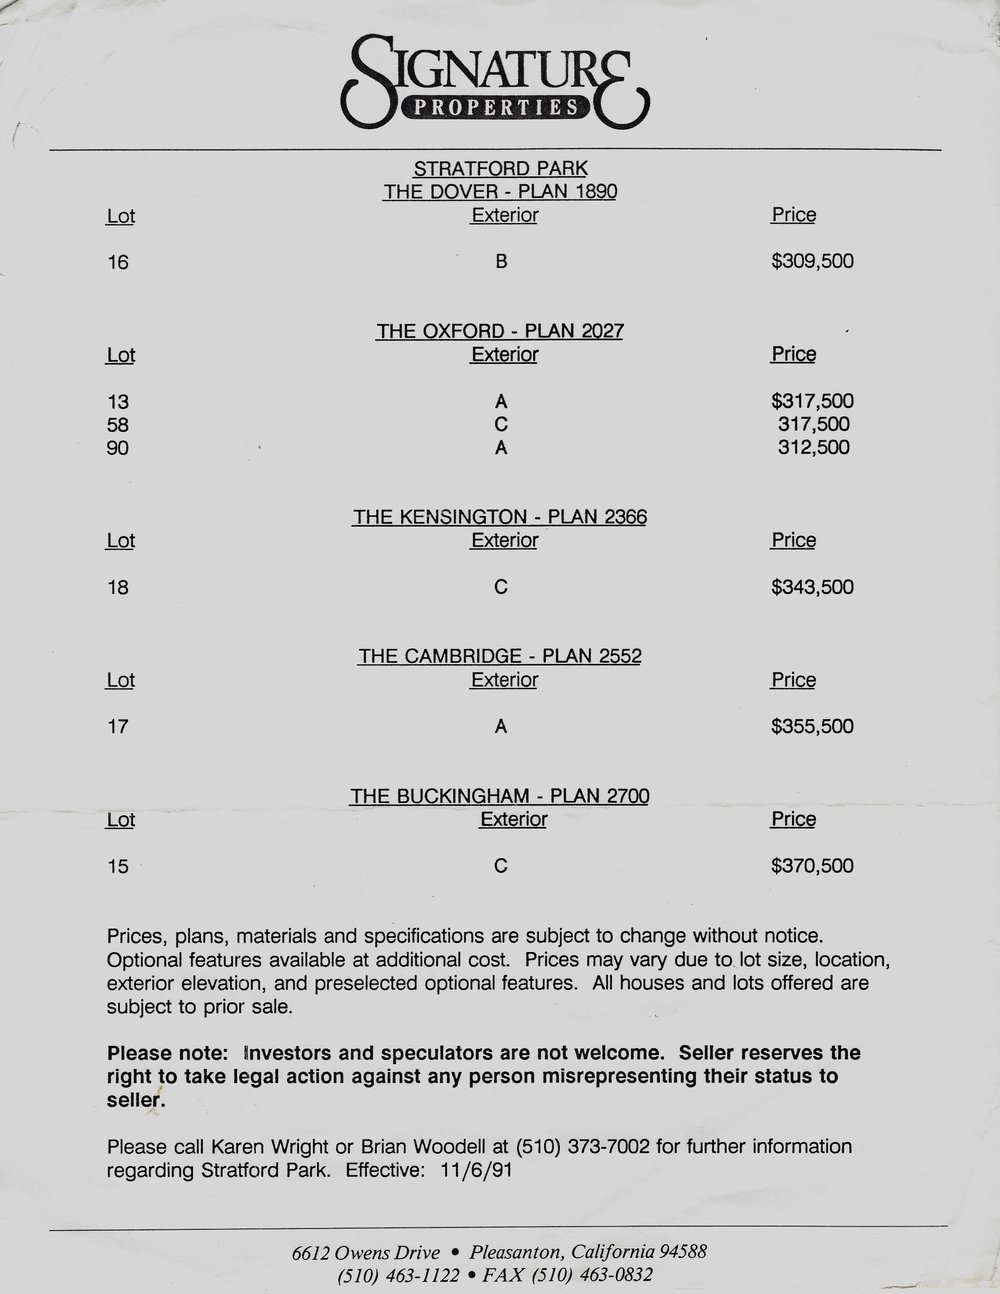 Original prices for Stratford Park homes in the early 1990s